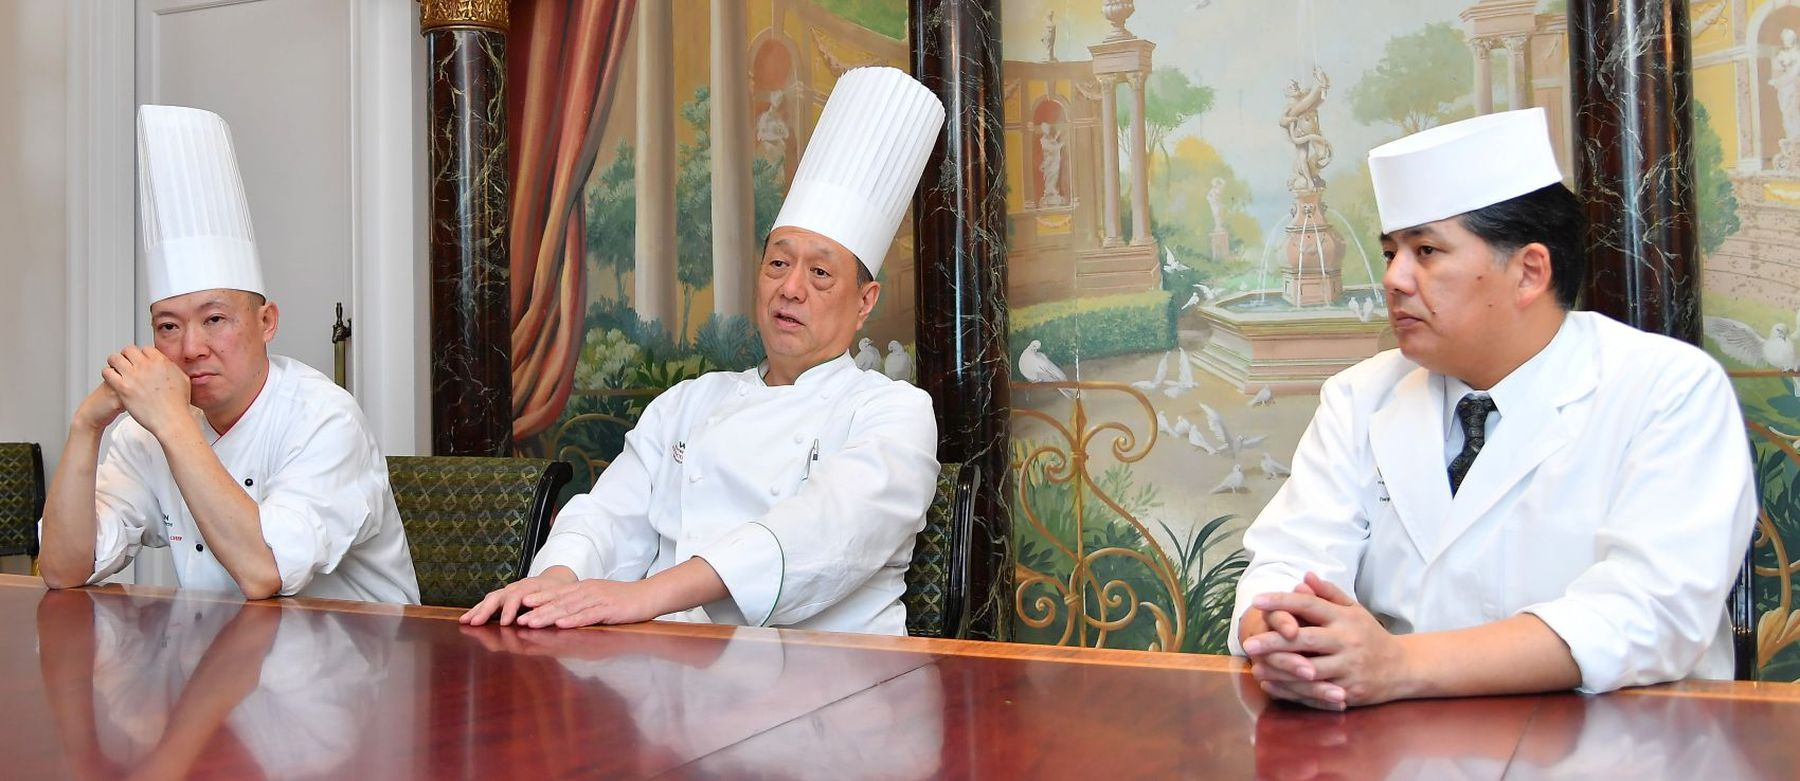 The Westin Tokyo Interview on Quality Dinning in Japan